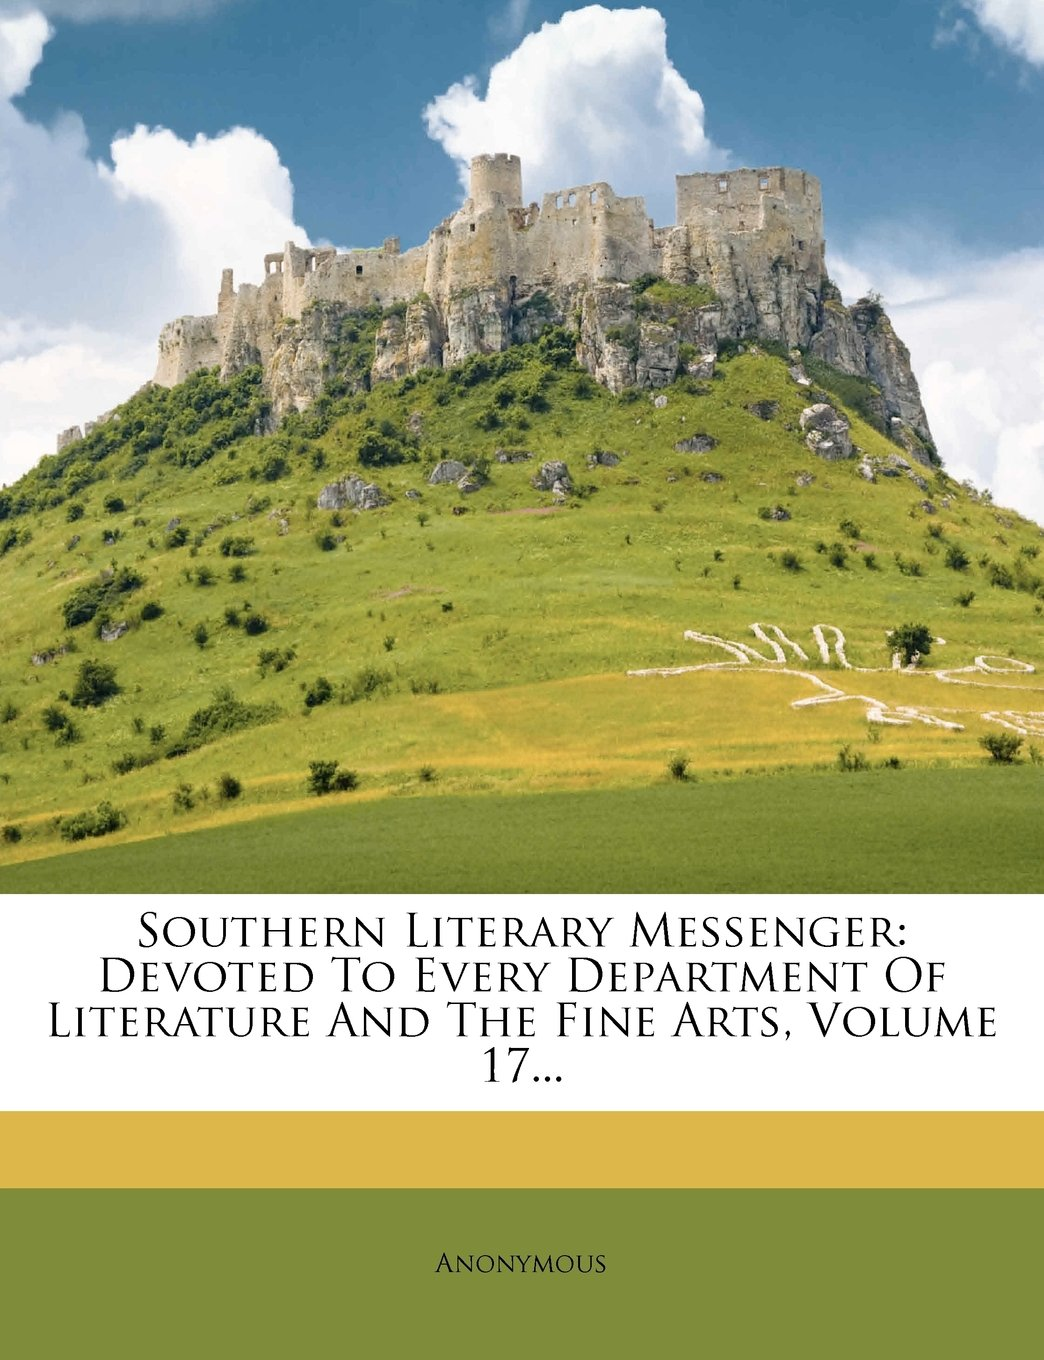 Southern Literary Messenger: Devoted To Every Department Of Literature And The Fine Arts, Volume 17... pdf epub